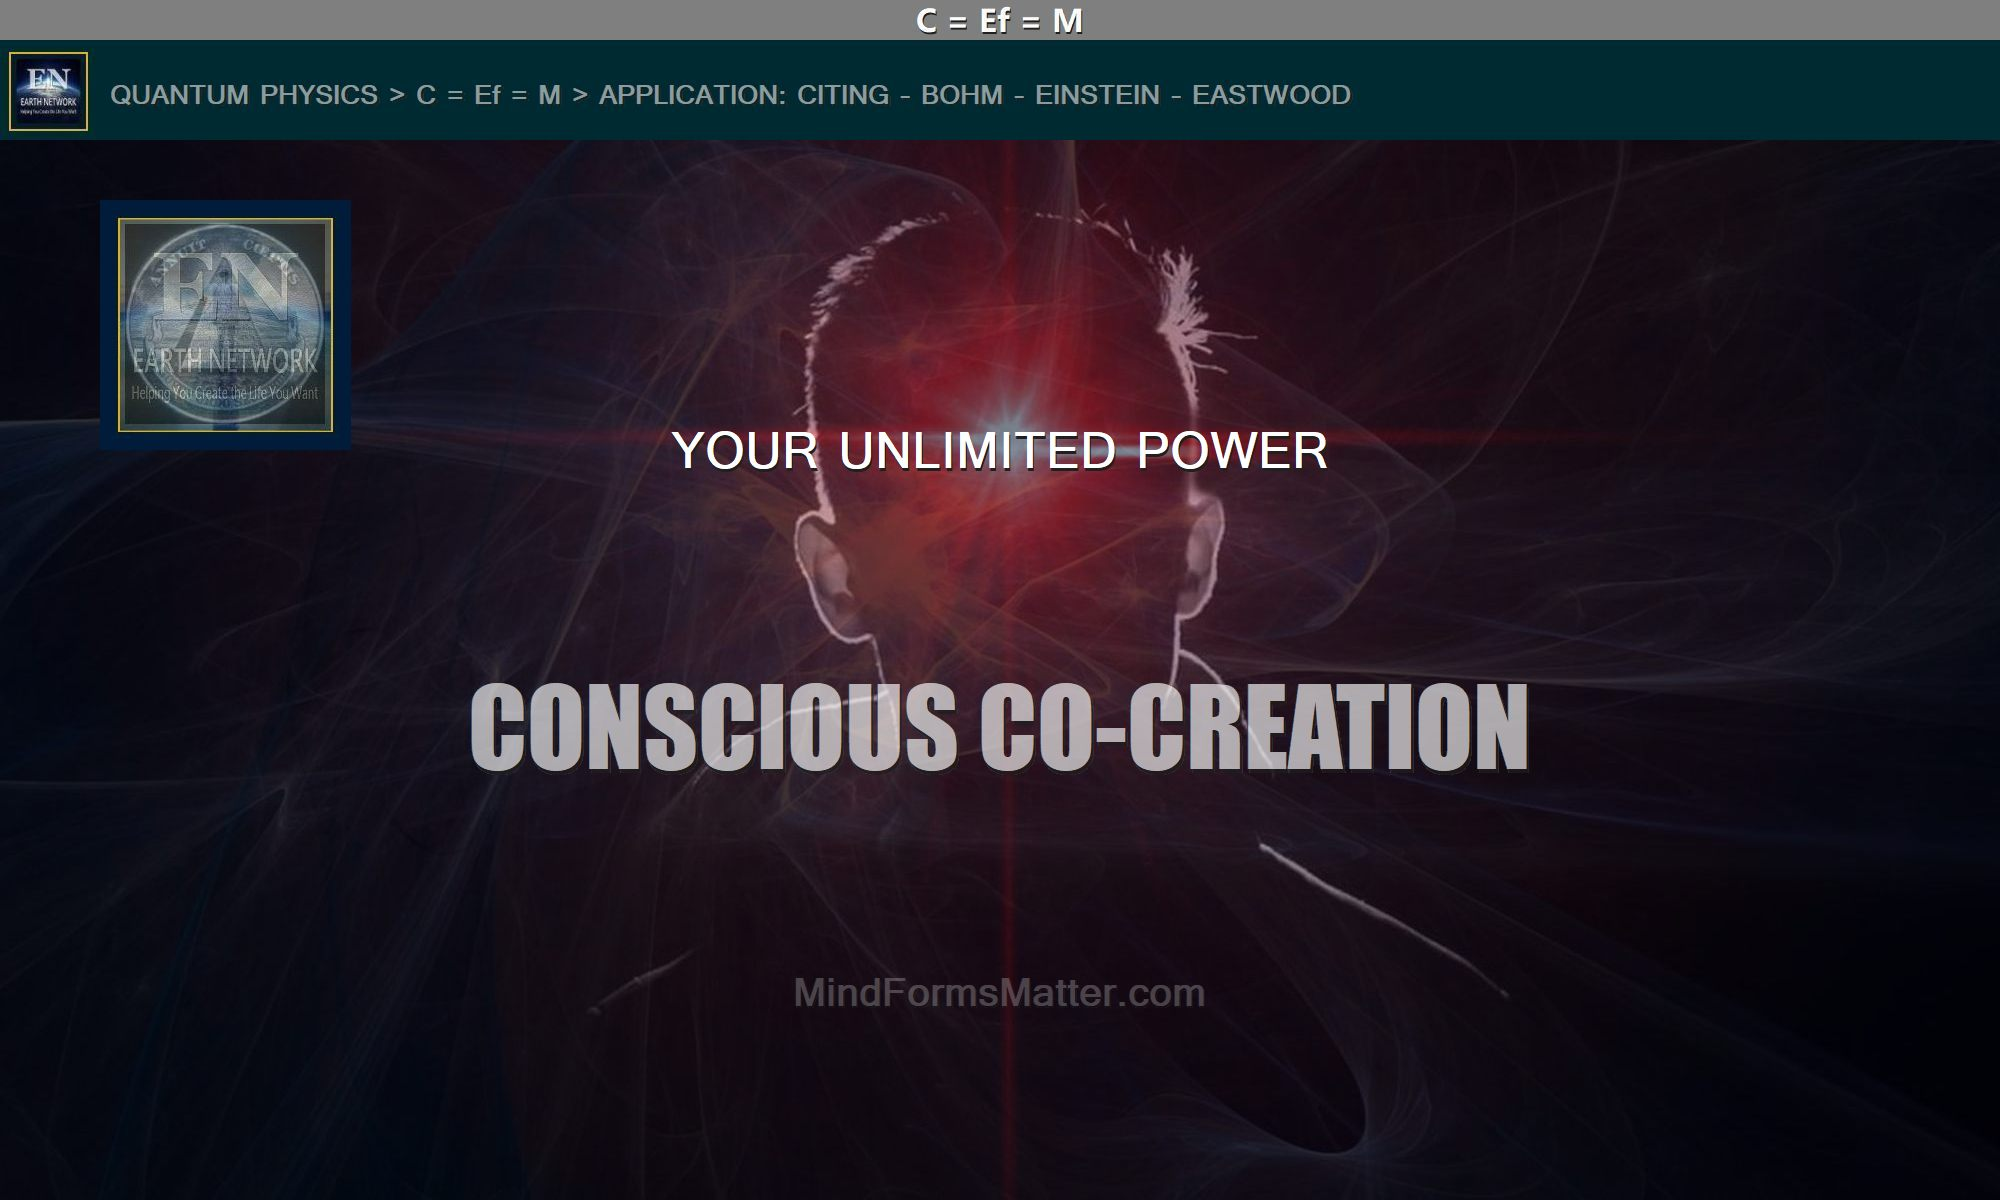 man-depicts-what-is-conscious-co-creation-do-i-have-spiritual-guidance-guide-inner-self-soul-spirit-entity-manifesting